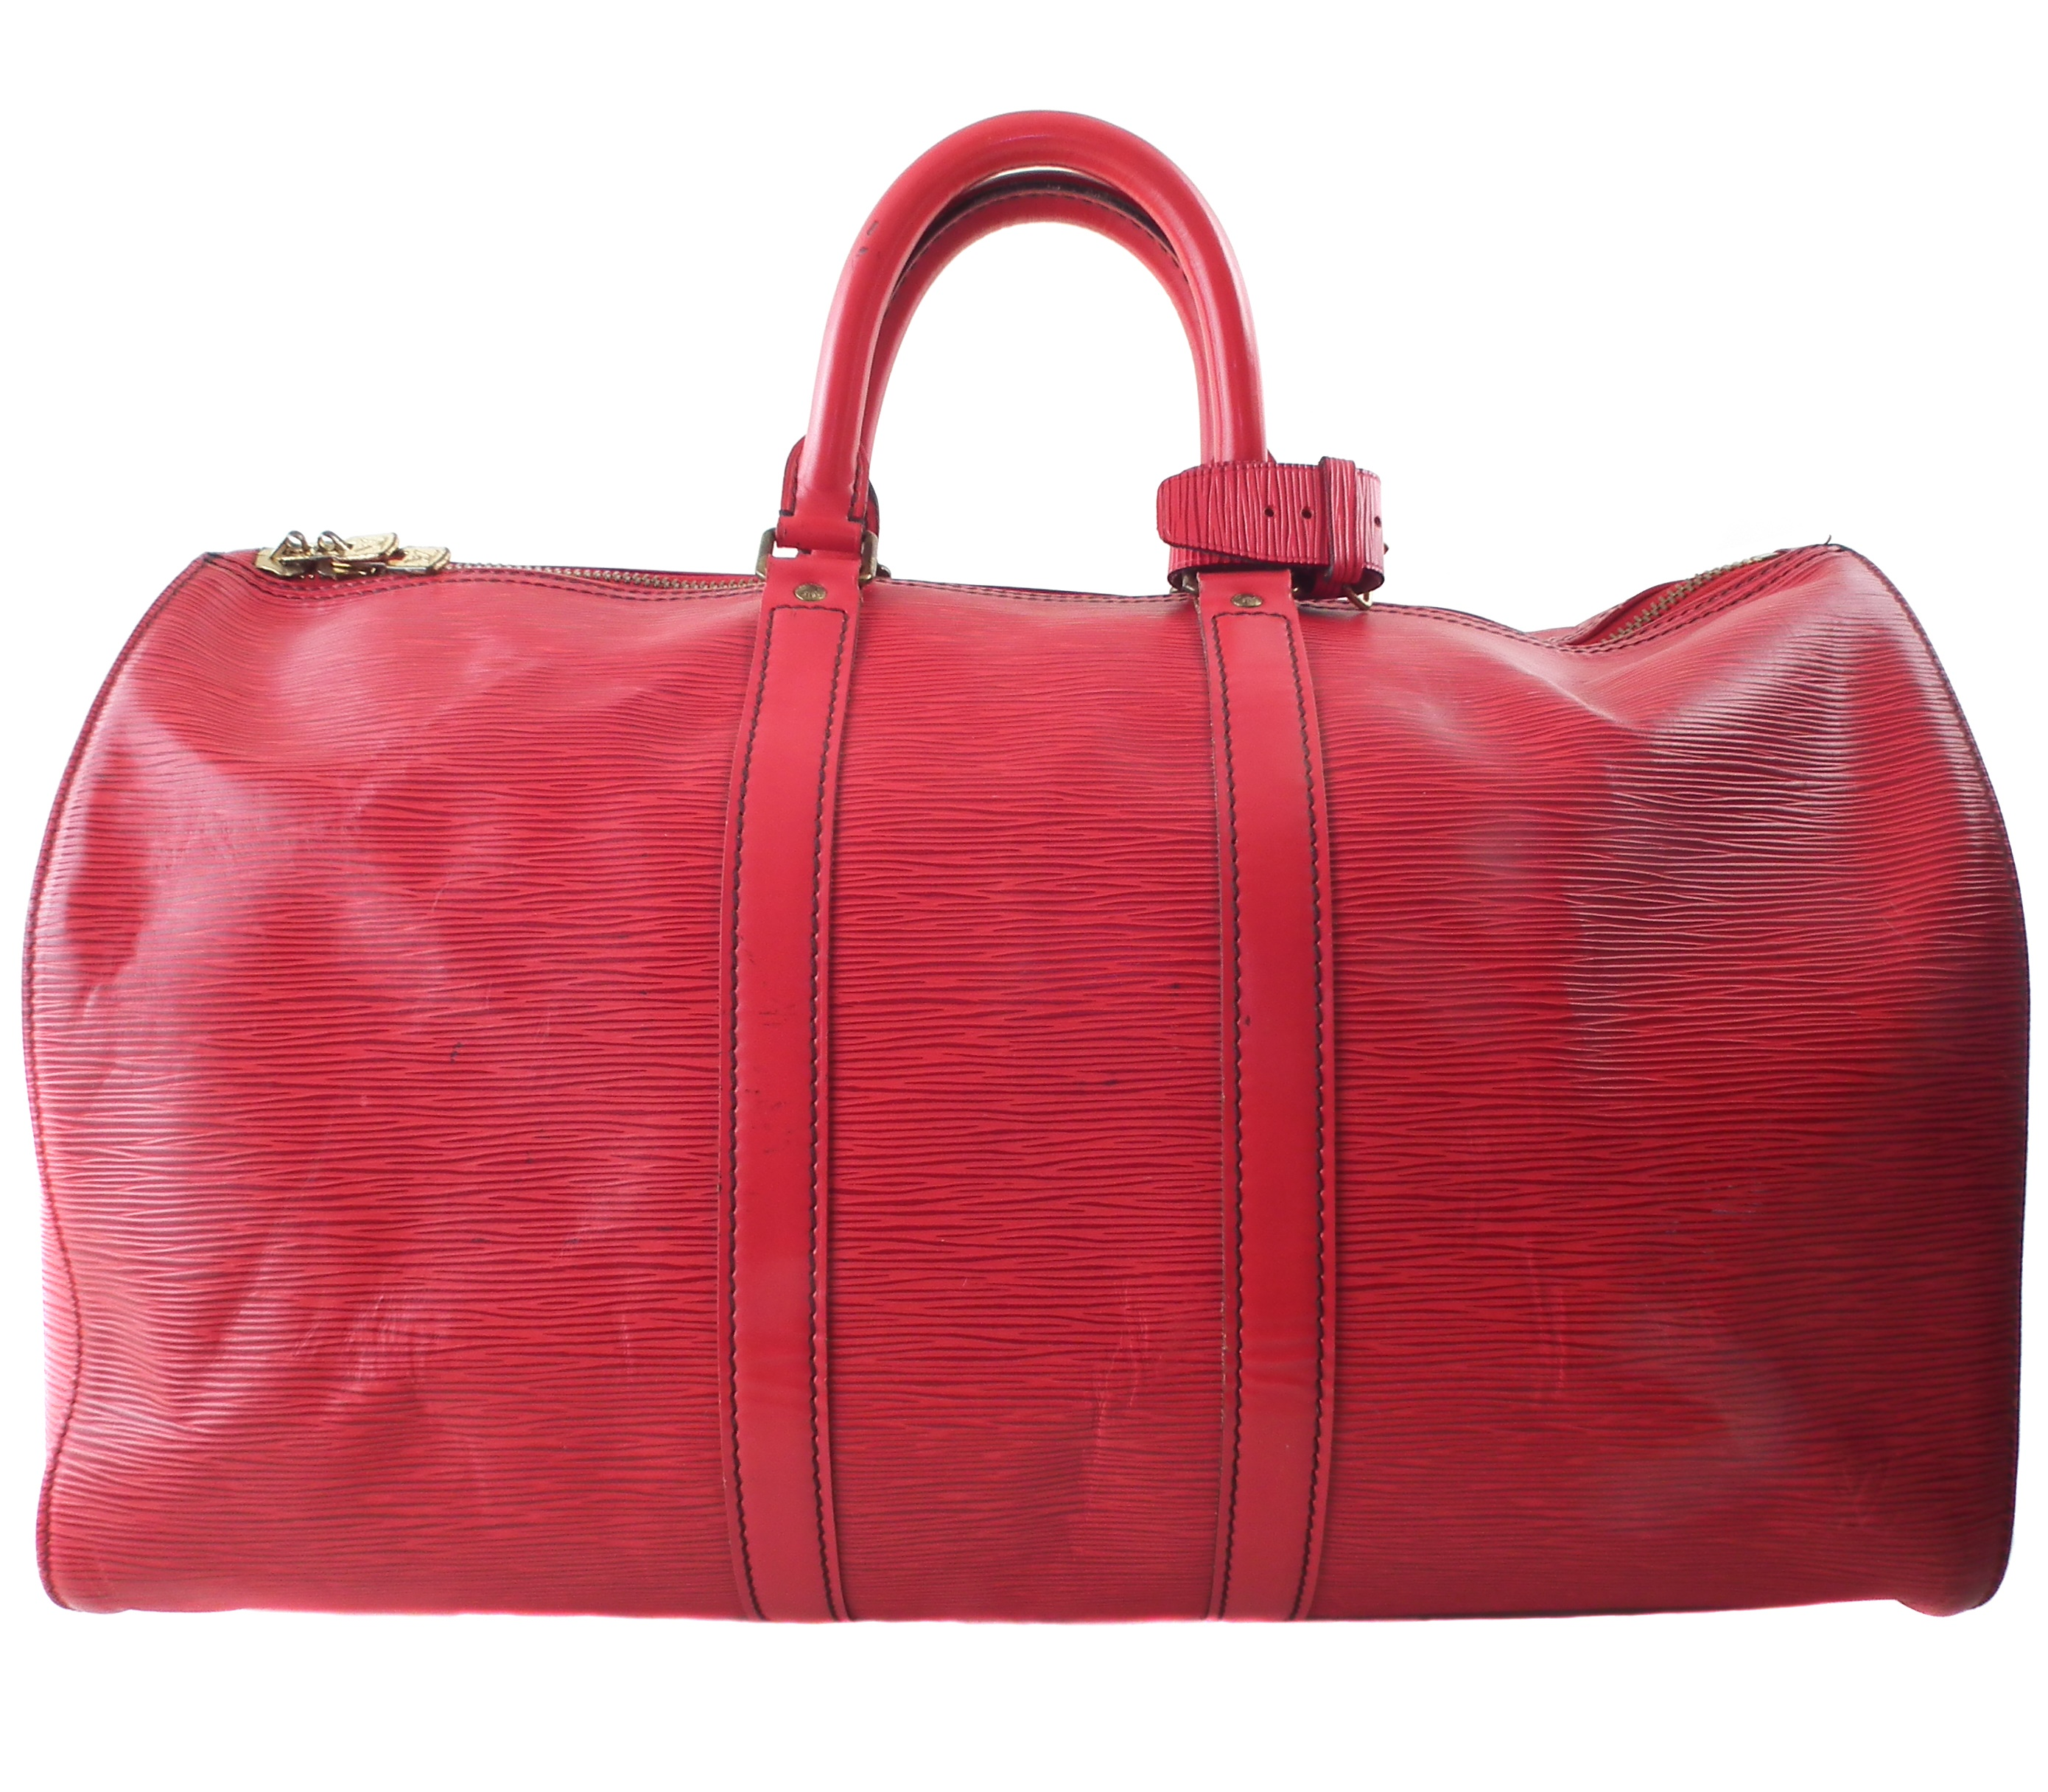 A Louis Vuitton red Epi Keepall 45 luggage bag,